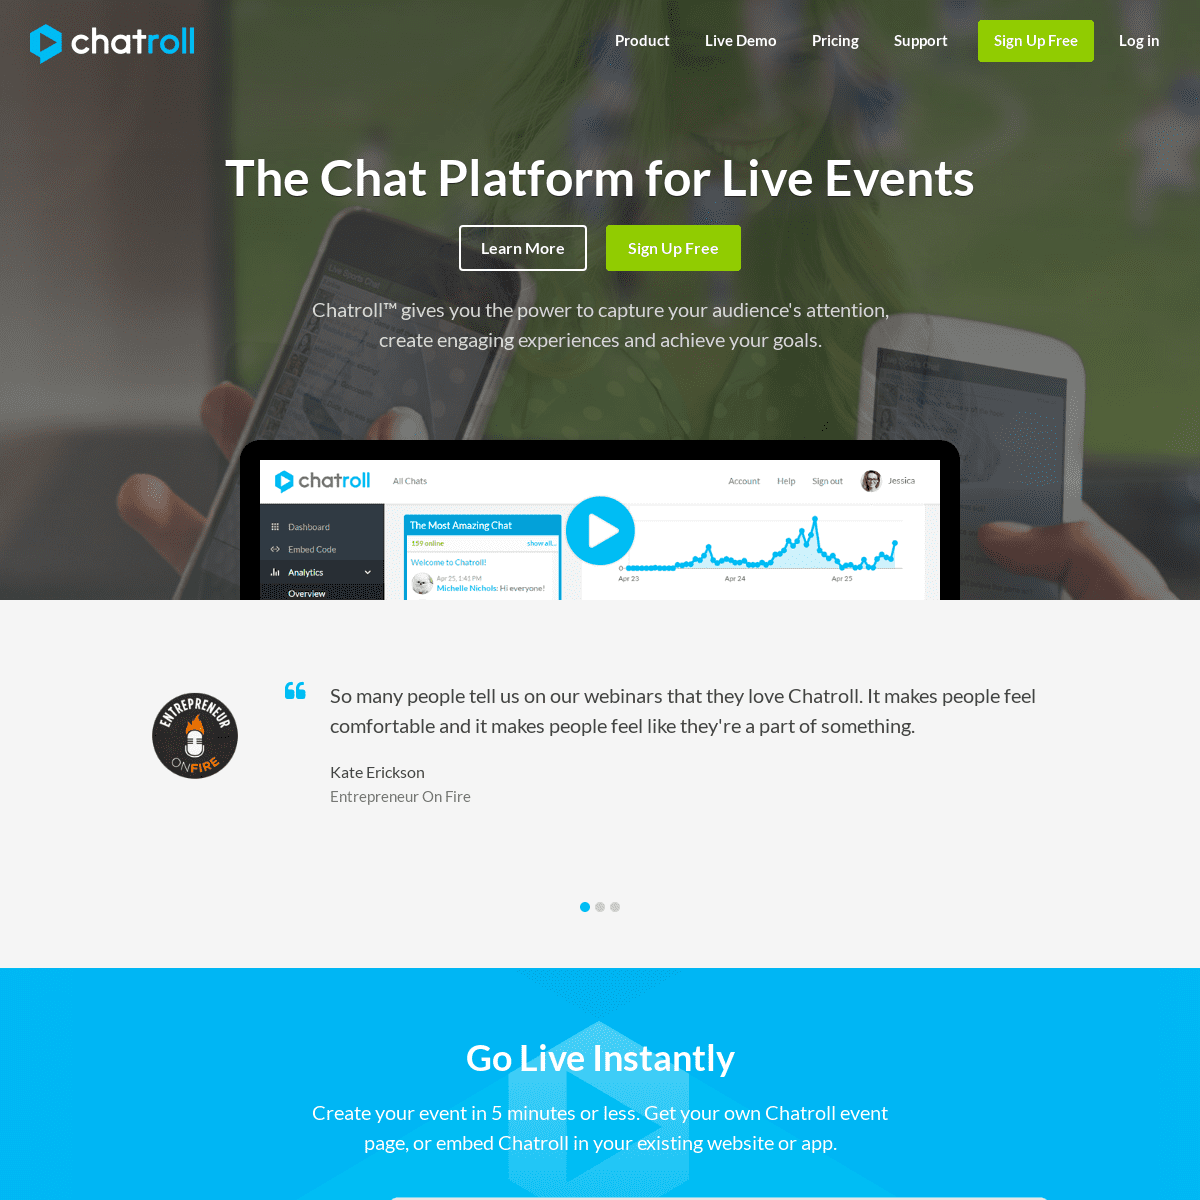 Chatroll — The chat platform for live events